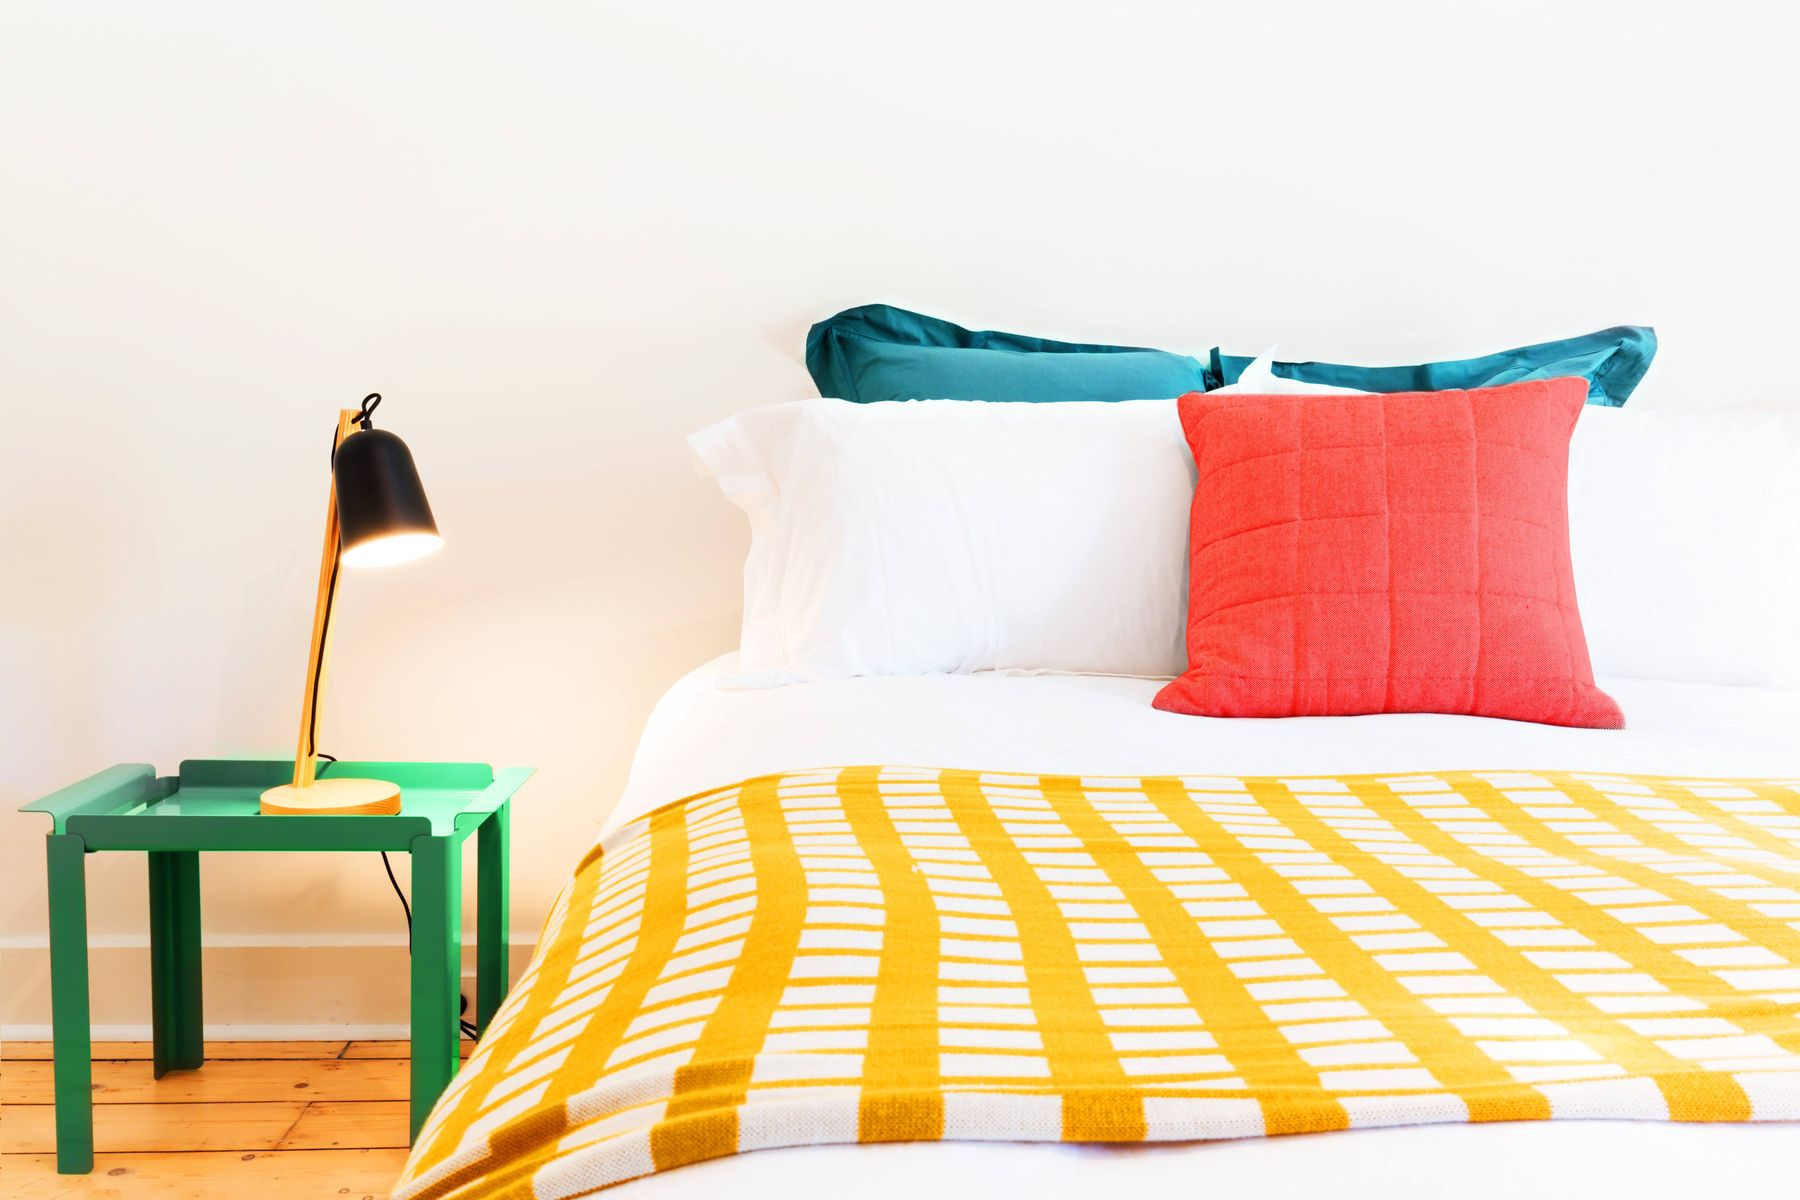 Bed with yellow and white striped bedsheets and pink cushion